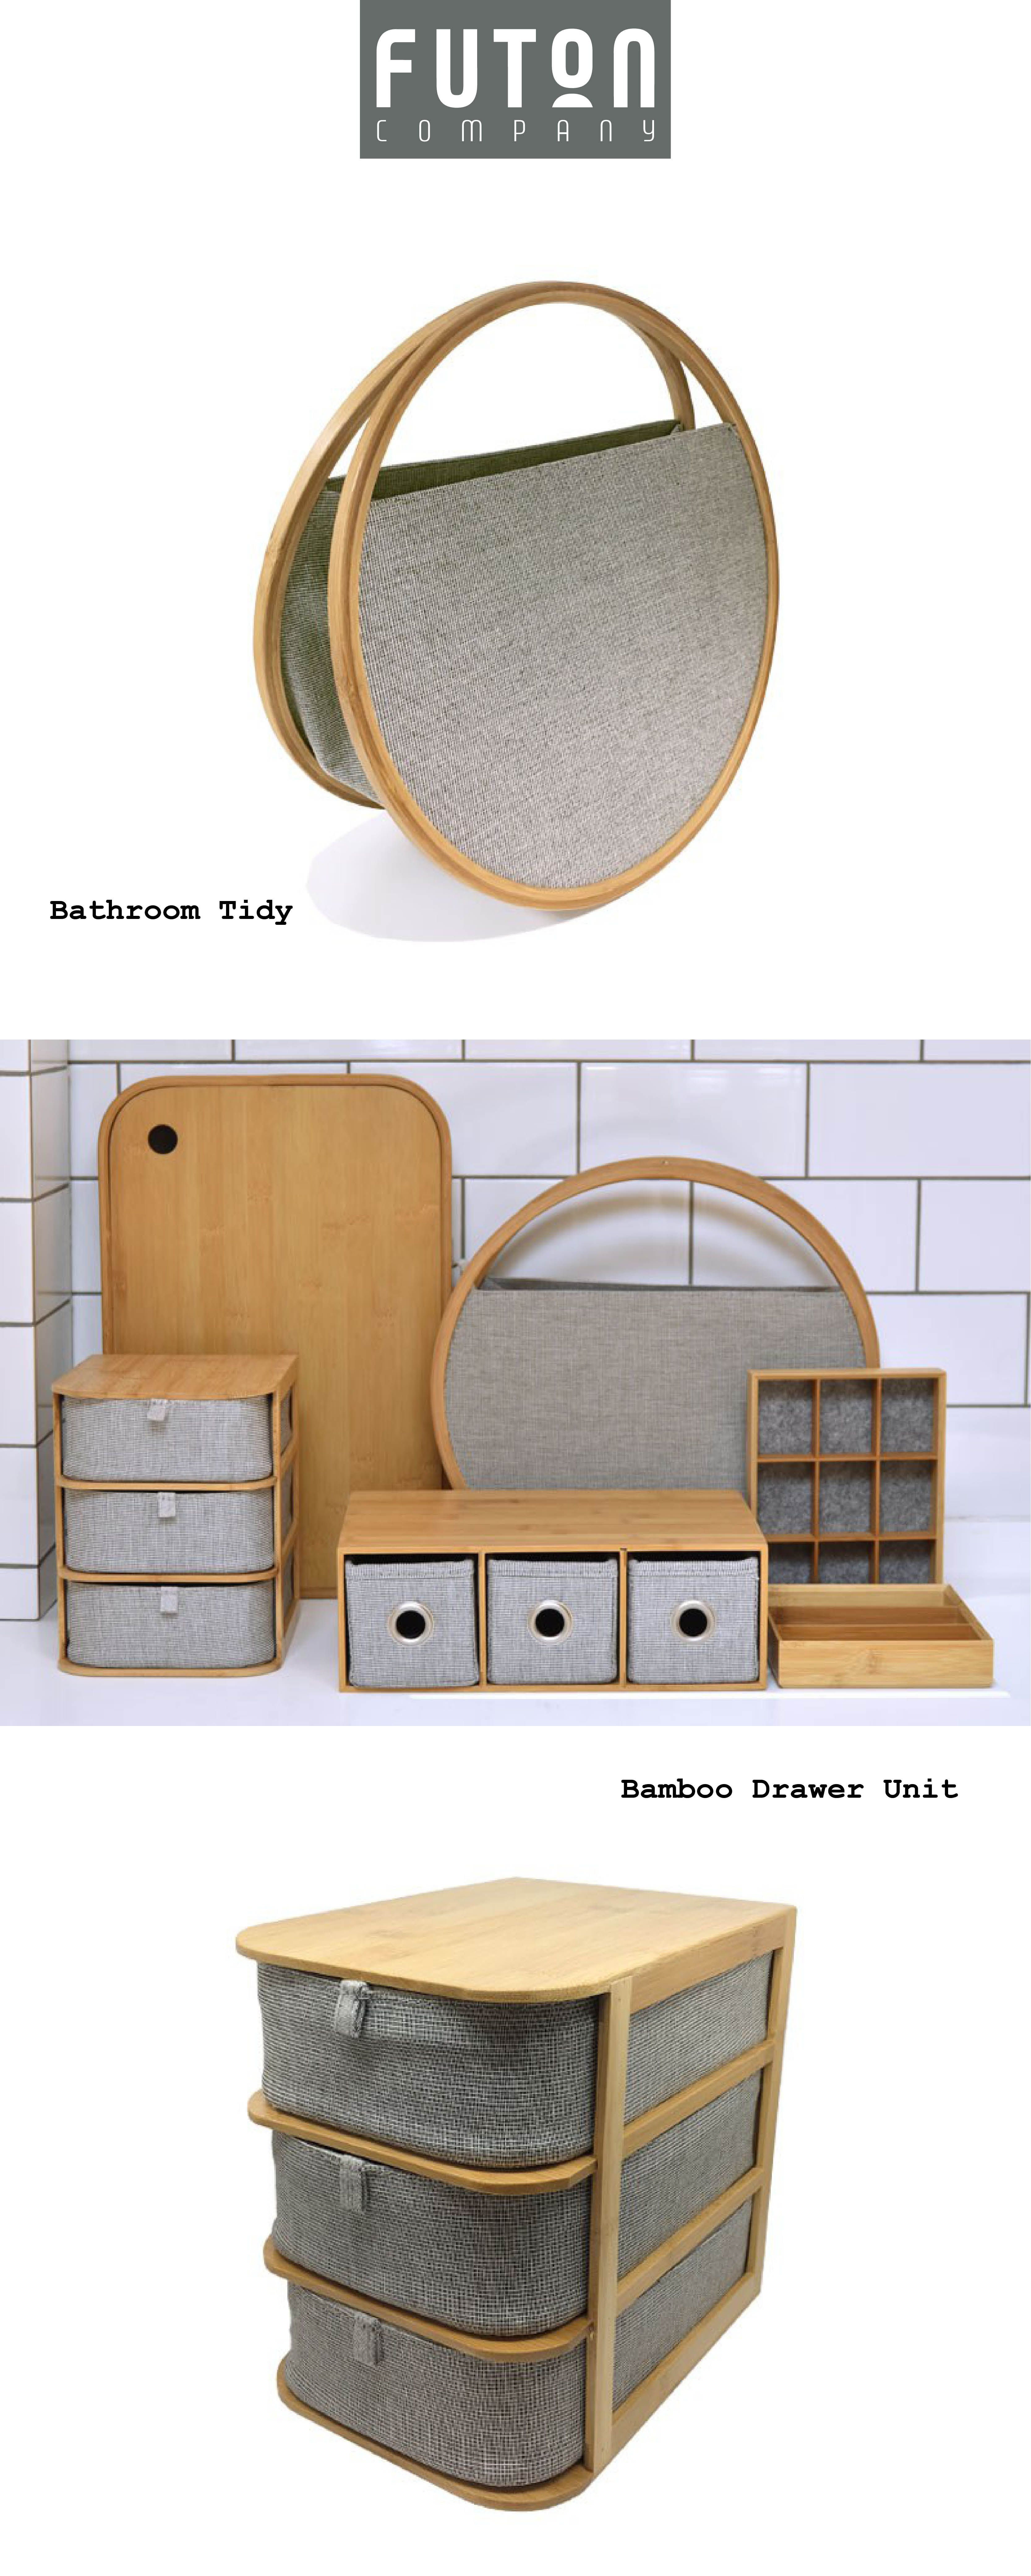 Bamboo Storage Furniture Furniture for small spaces